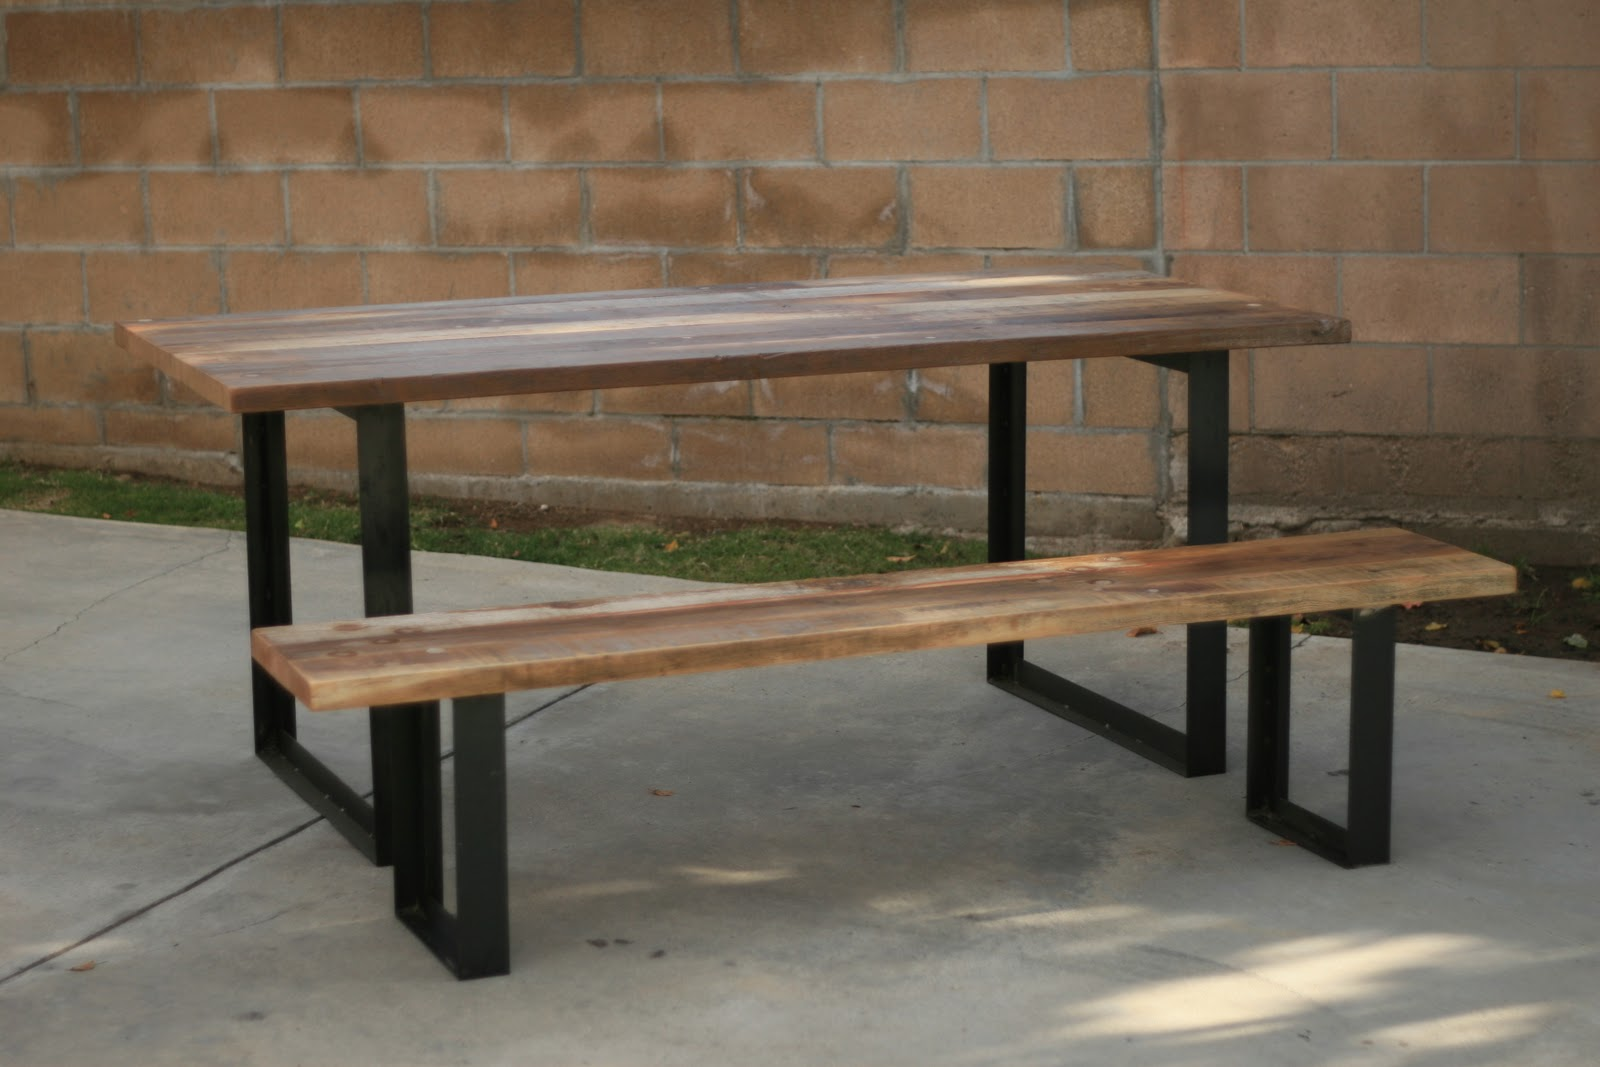 Arbor Exchange  Reclaimed Wood Furniture: Outdoor Table + Bench With Metal  Legs